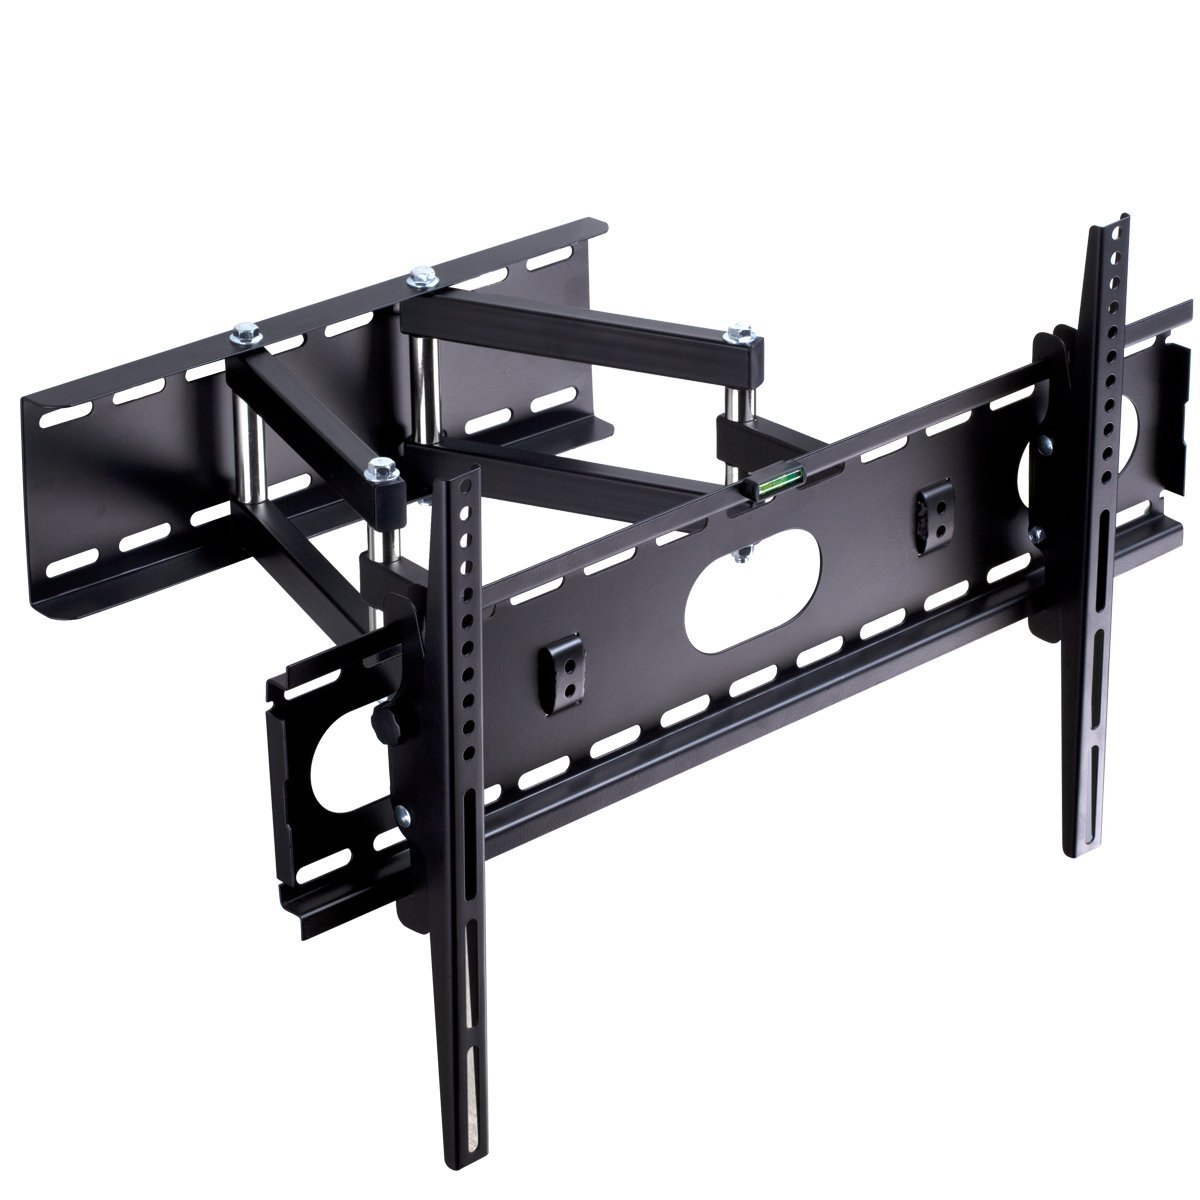 TV Wall Bracket Full Motion Swivel Articulating Fits 23''-50''/59cm-127cm for LCD LED 3D Plasma TV Up To 100lbs/46kg Max VESA 400x400mm Suptek MA4262-1 Fenghua Yuanfan TV Mount Co. Ltd